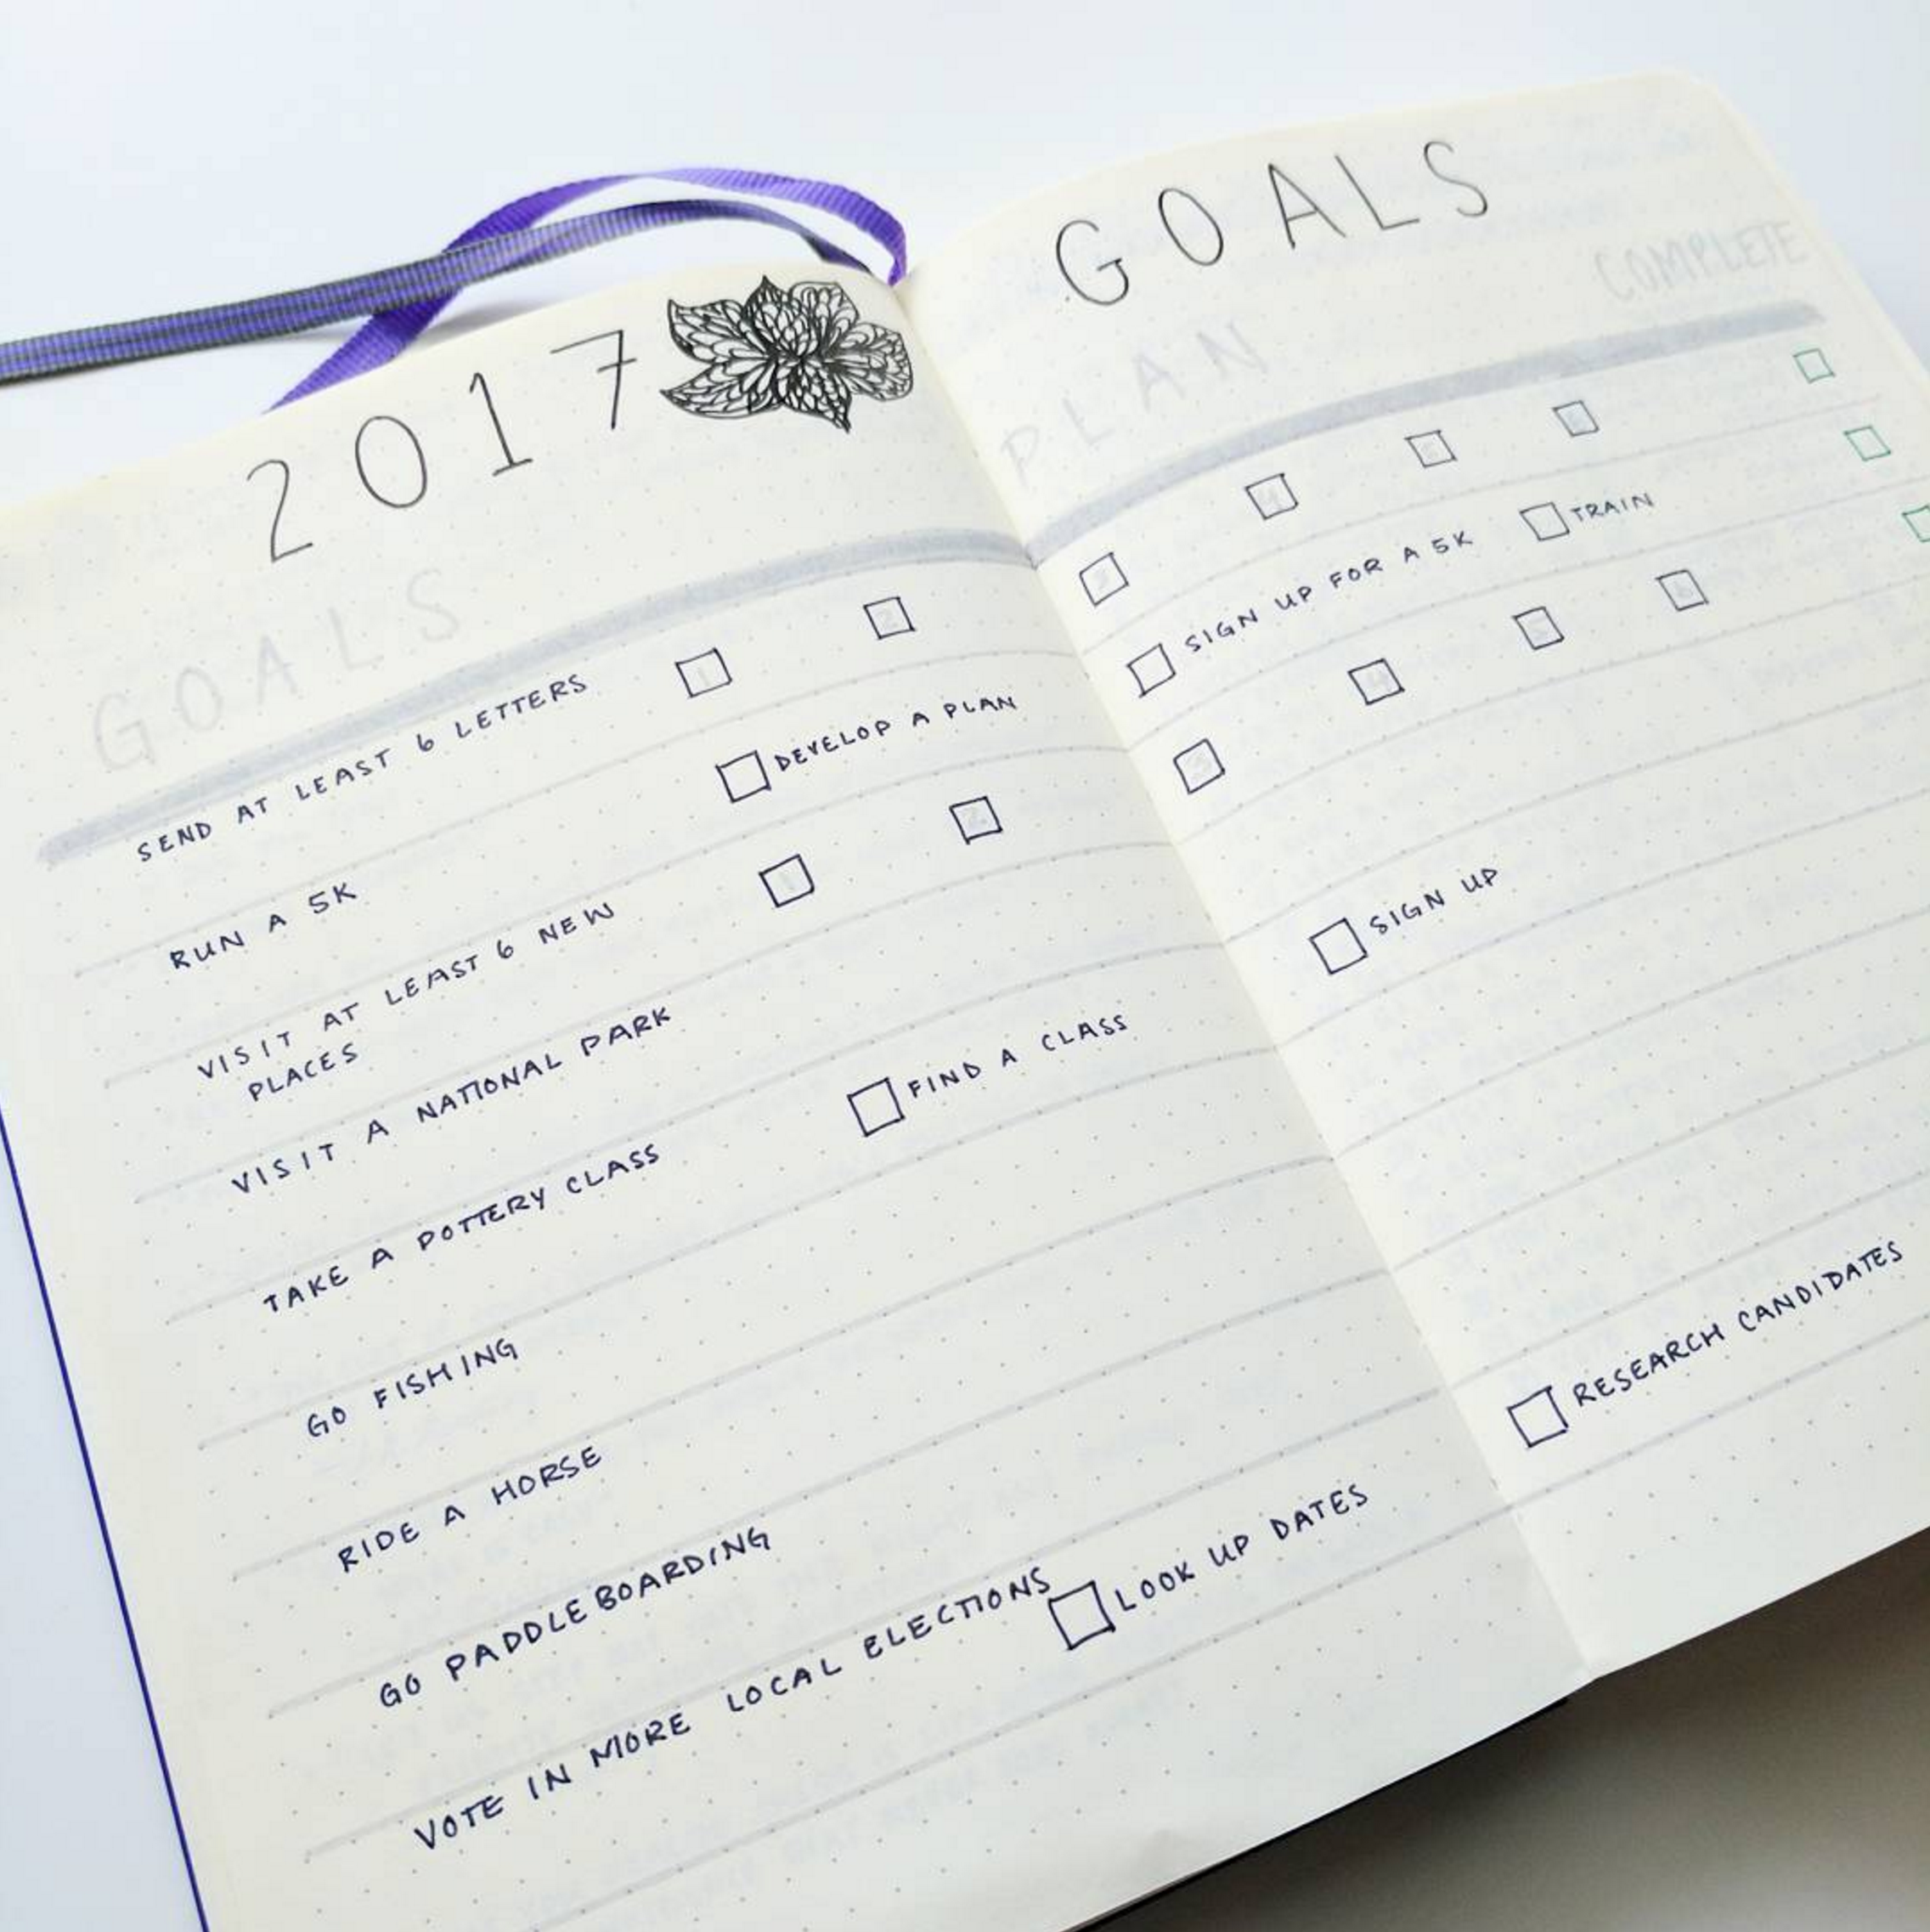 Lovely goals planning method from  @pointofviewiseverything